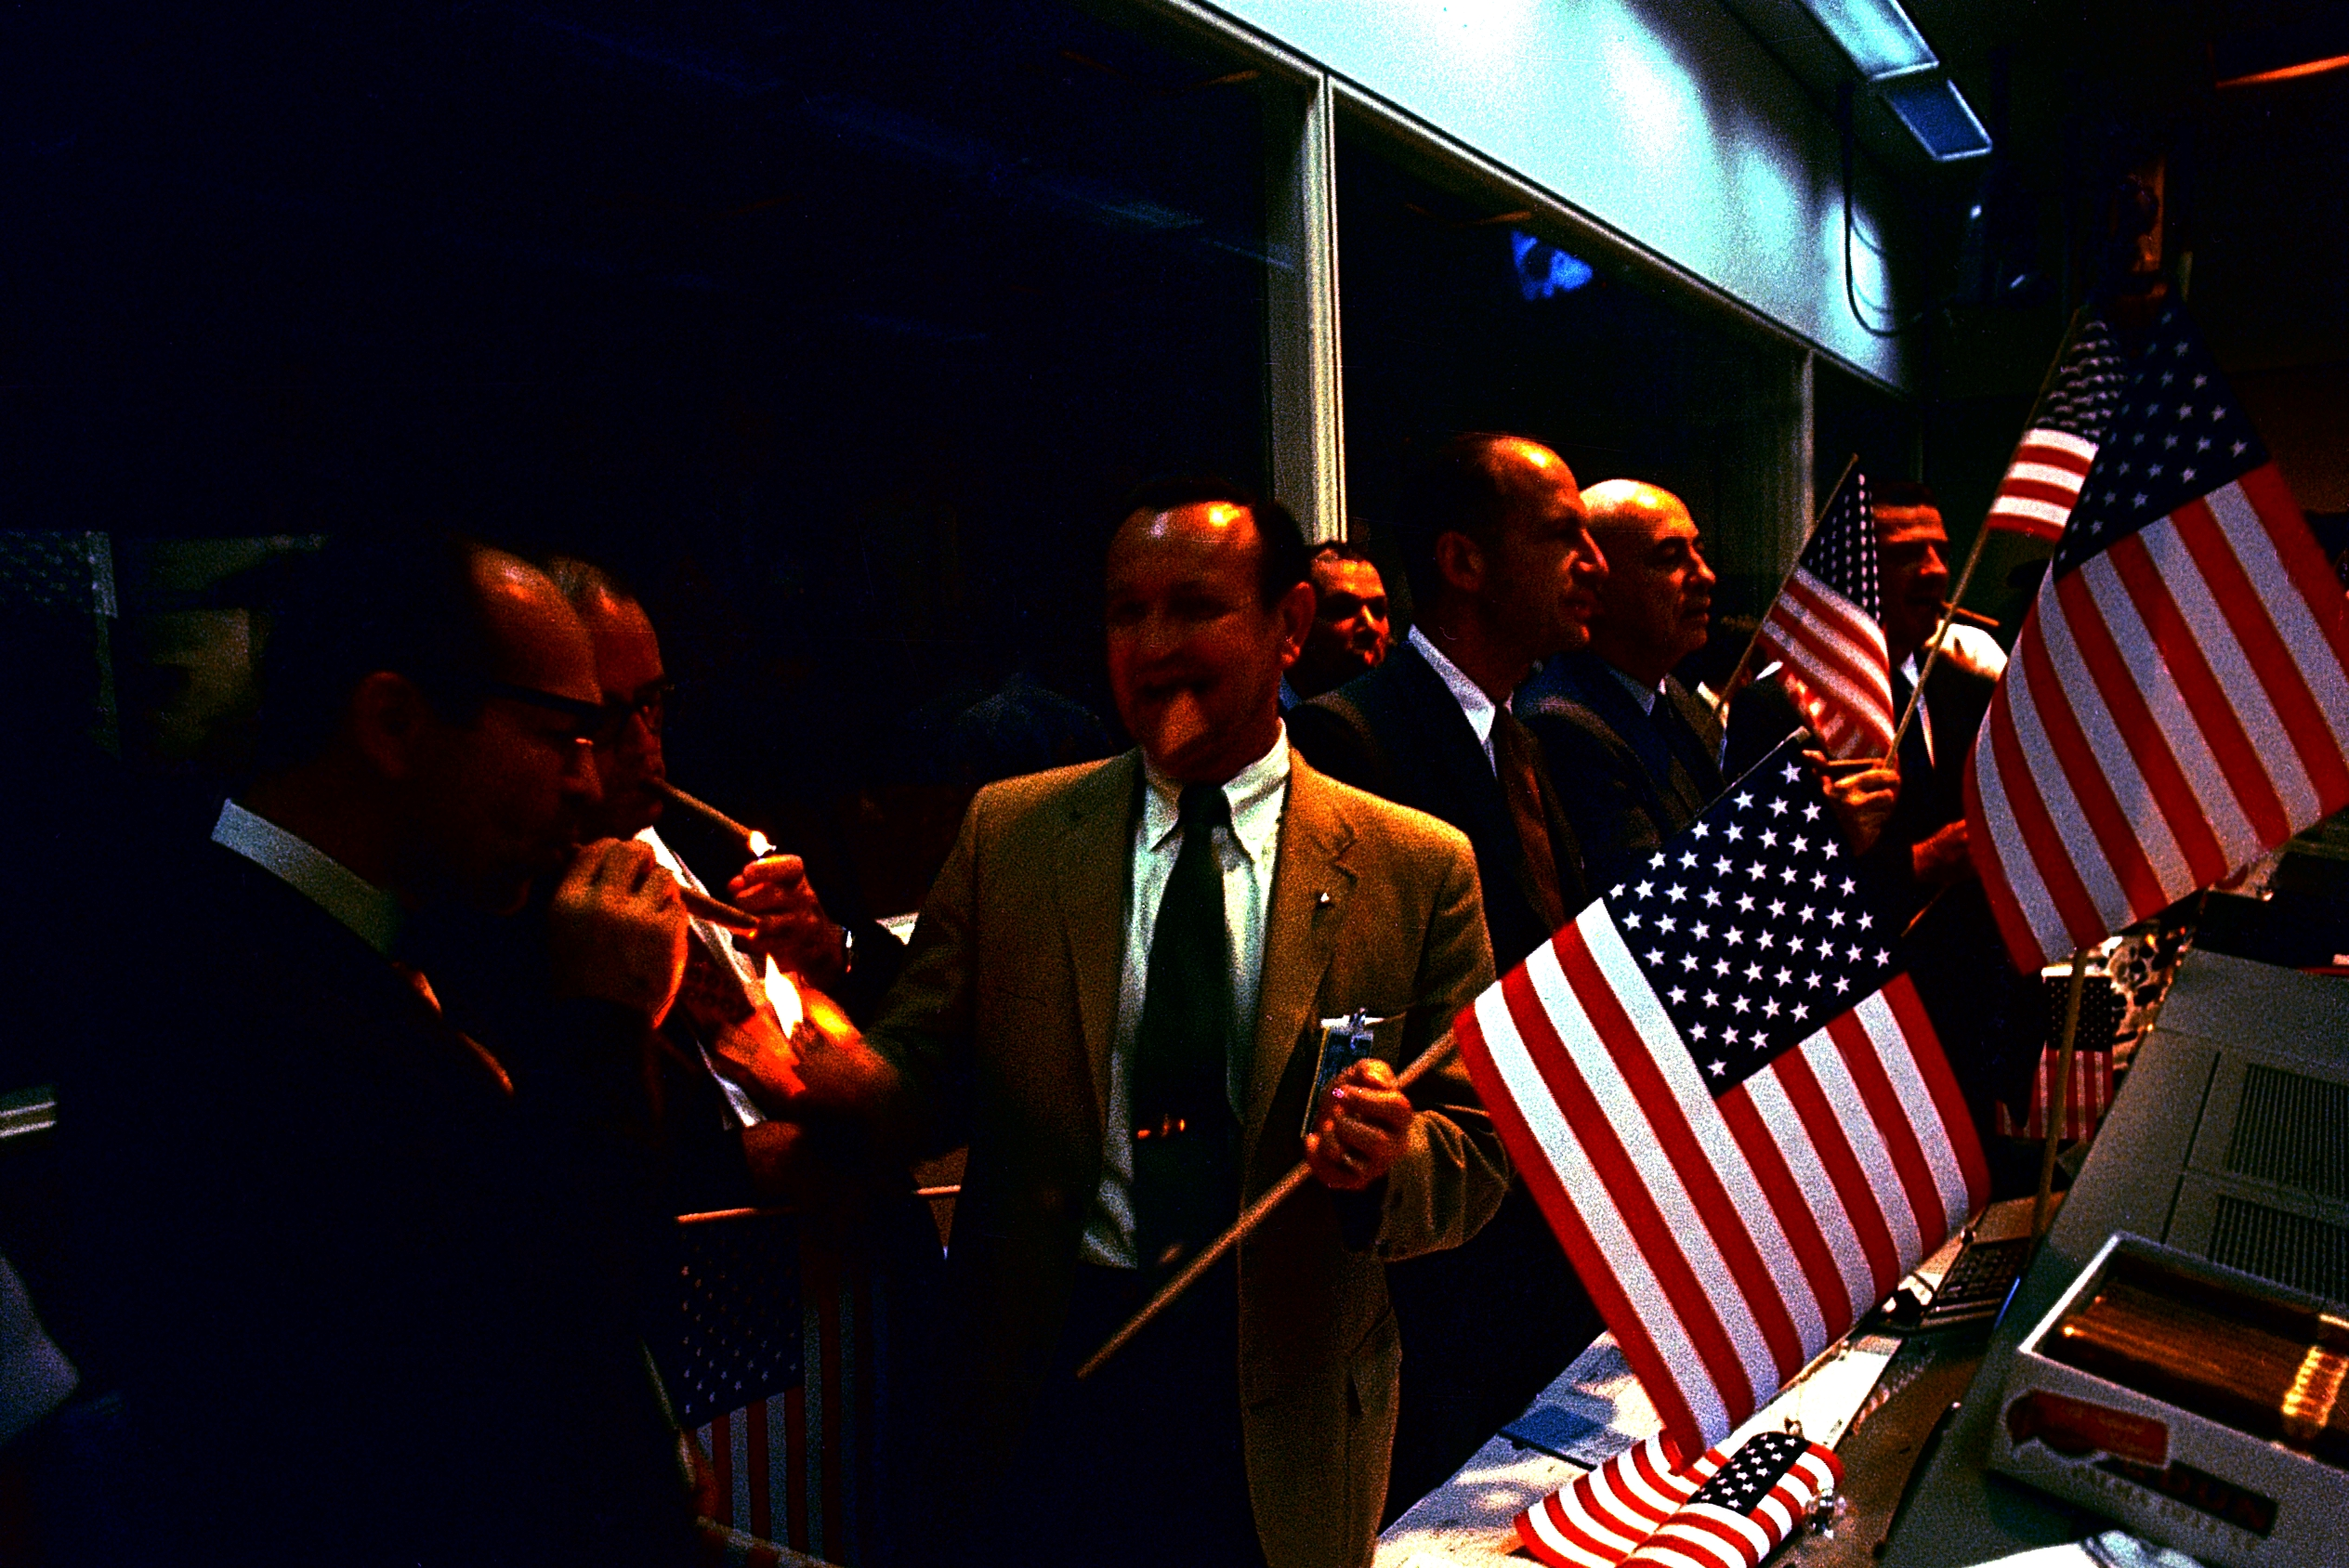 Apollo 11 Officials Celebrate